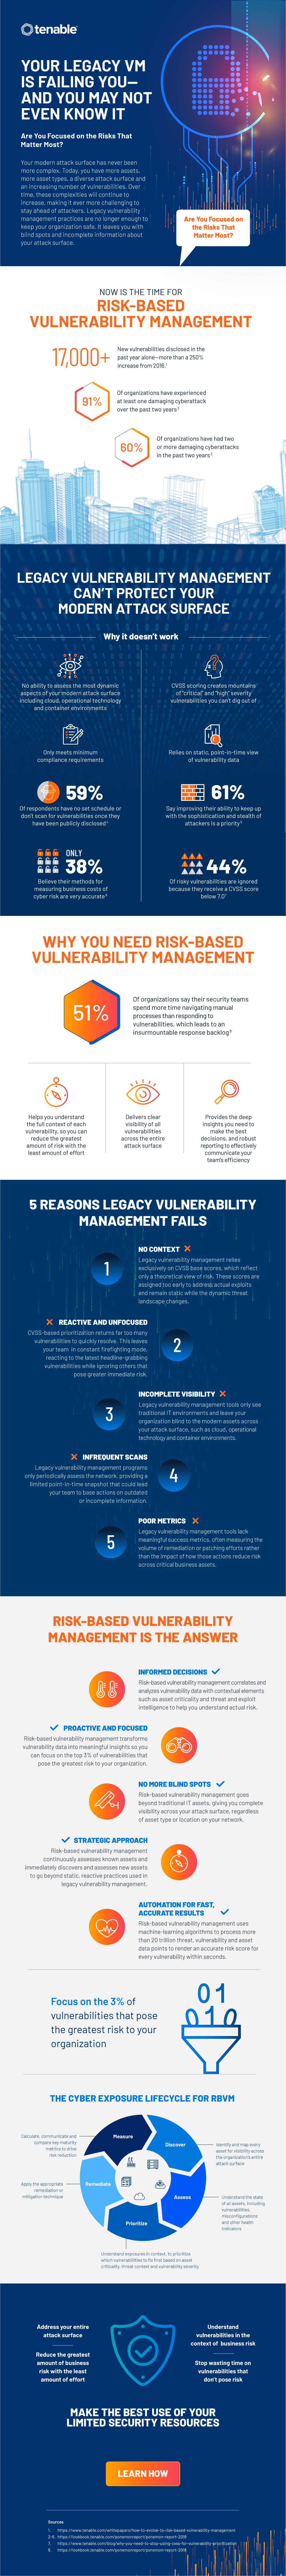 Your Legacy VM is Failing You - And You May Not Even Know It